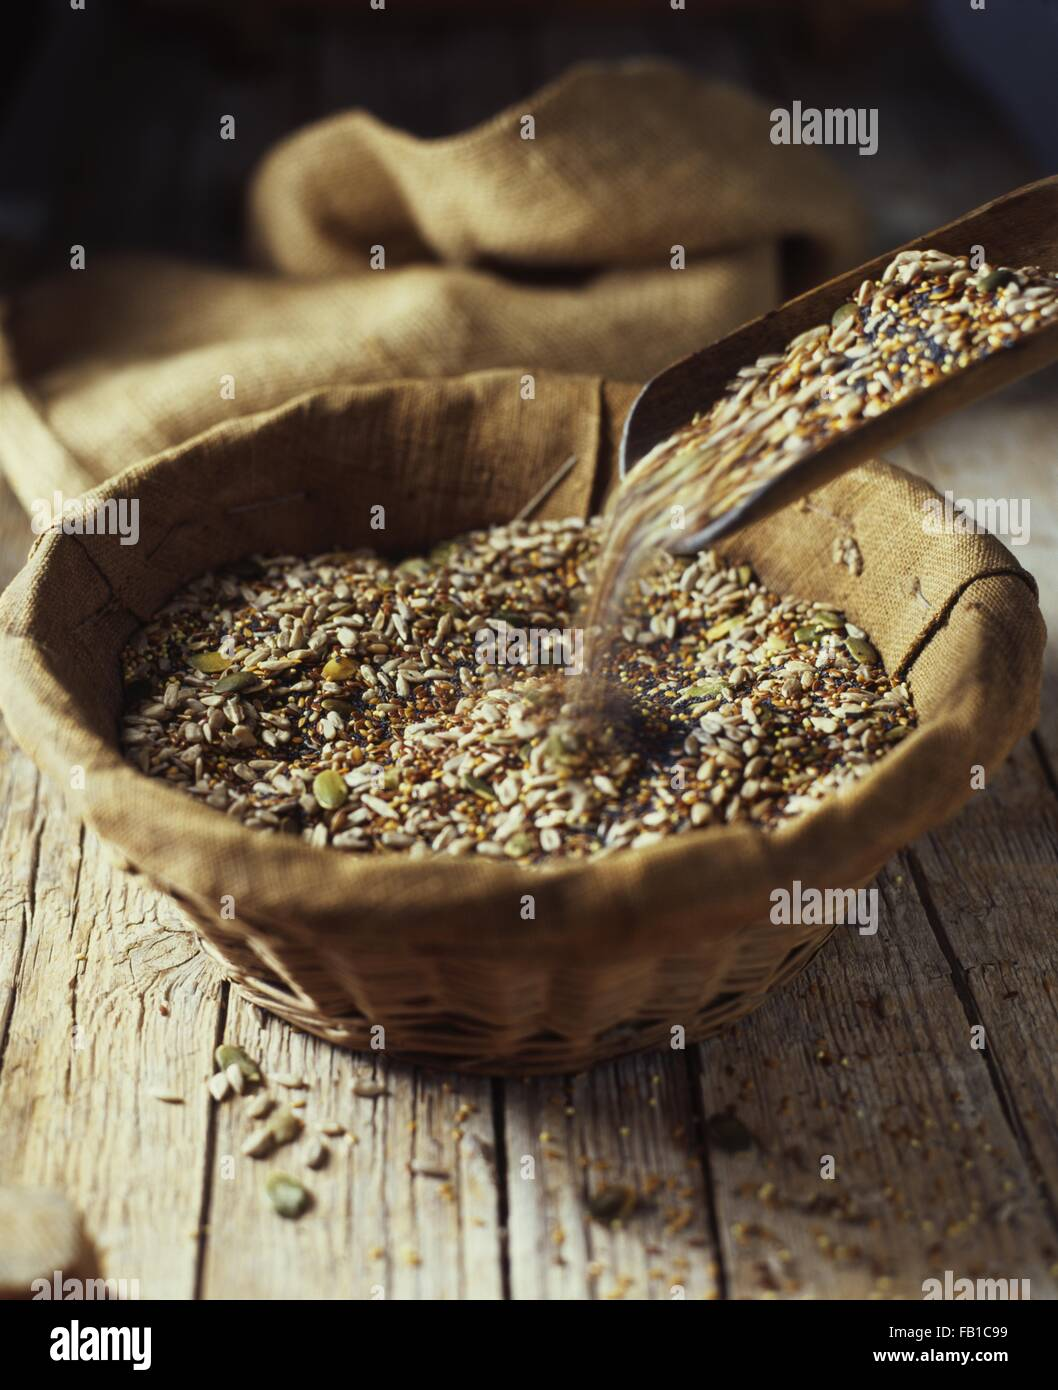 Organic bakery ingredients, mix of pumpkin, sunflower, poppy and flax seeds pouring into wicker bowl - Stock Image